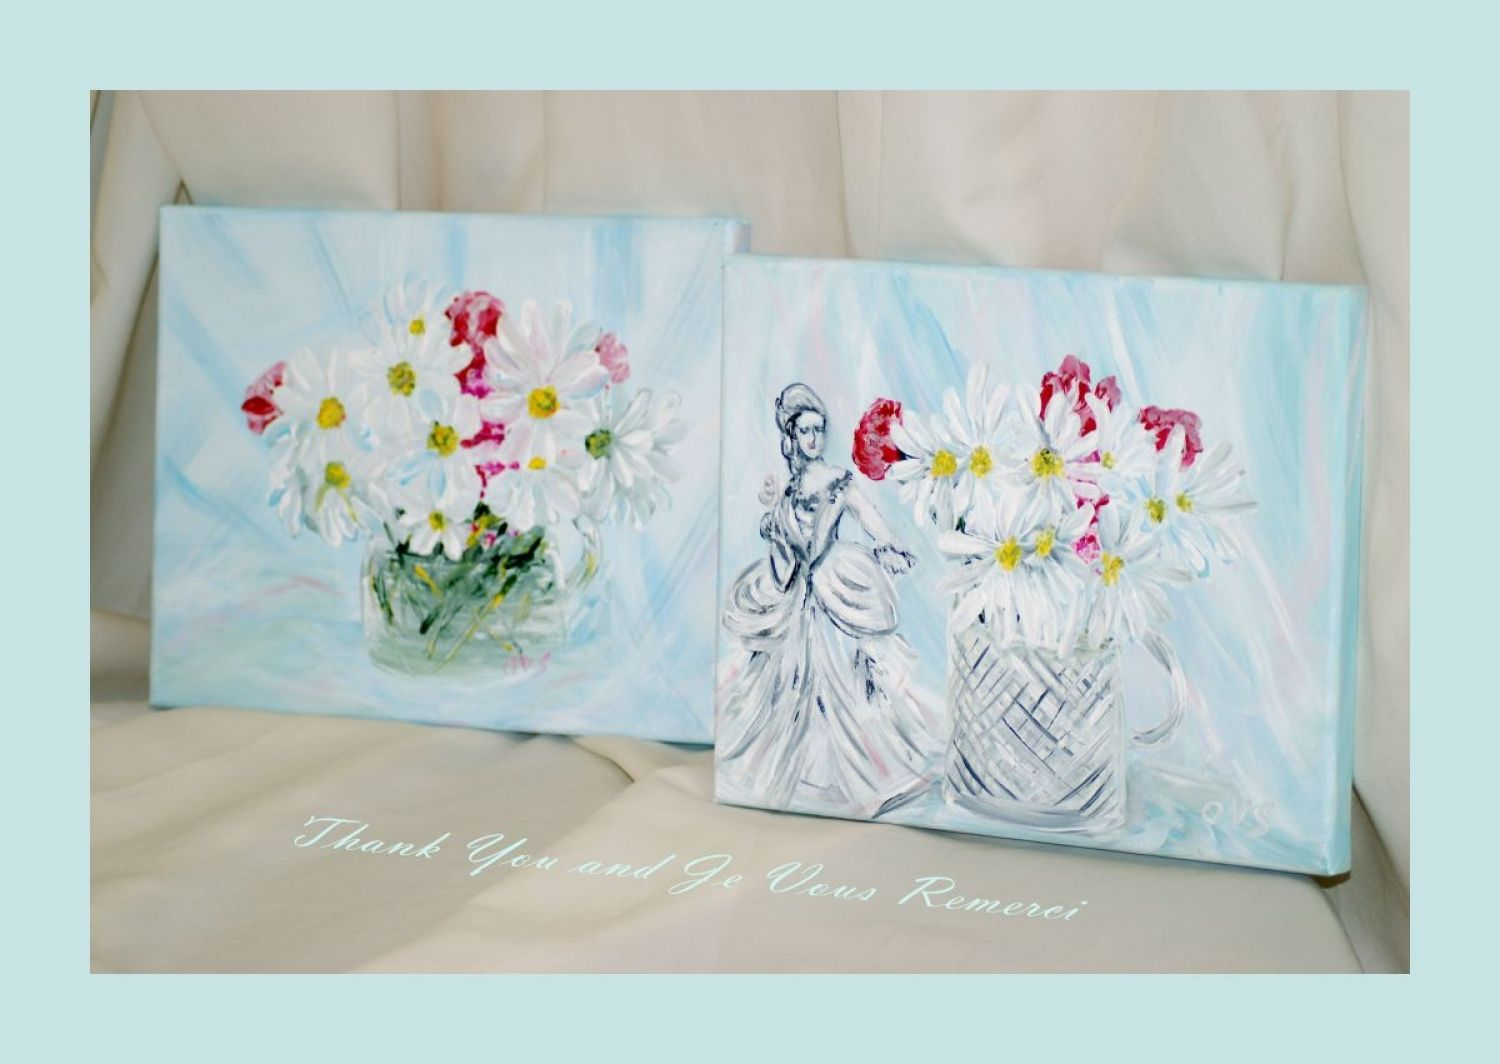 Thank You and Je Vous Remerci . Collection, set of 2 acrylic